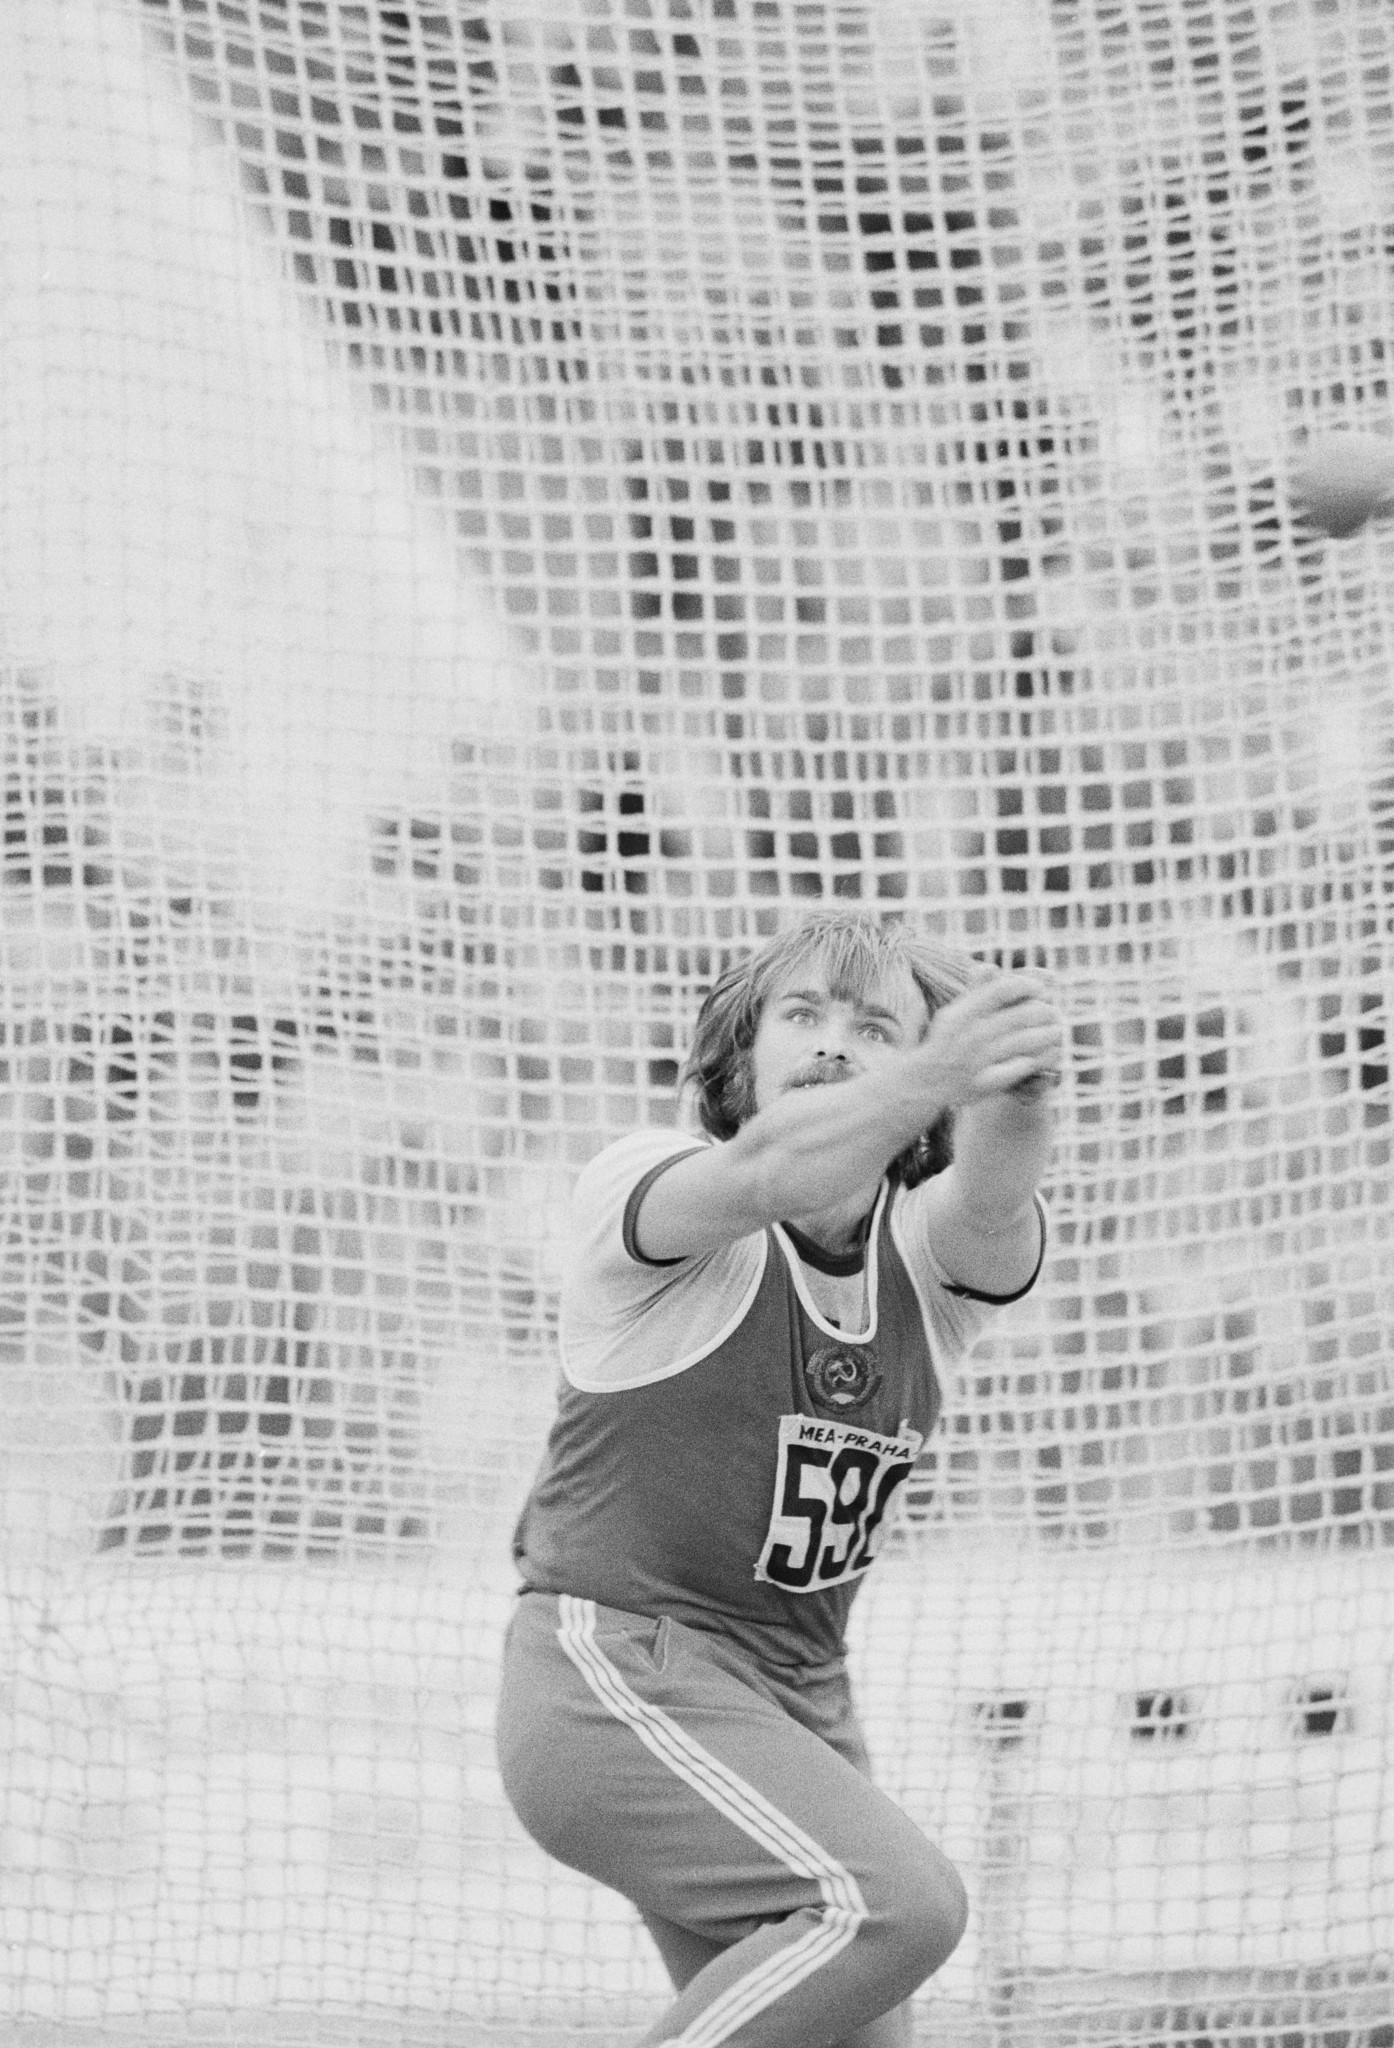 Yuriy Sedykh set a world record for the hammer in 1986 that still stands ©Getty Images